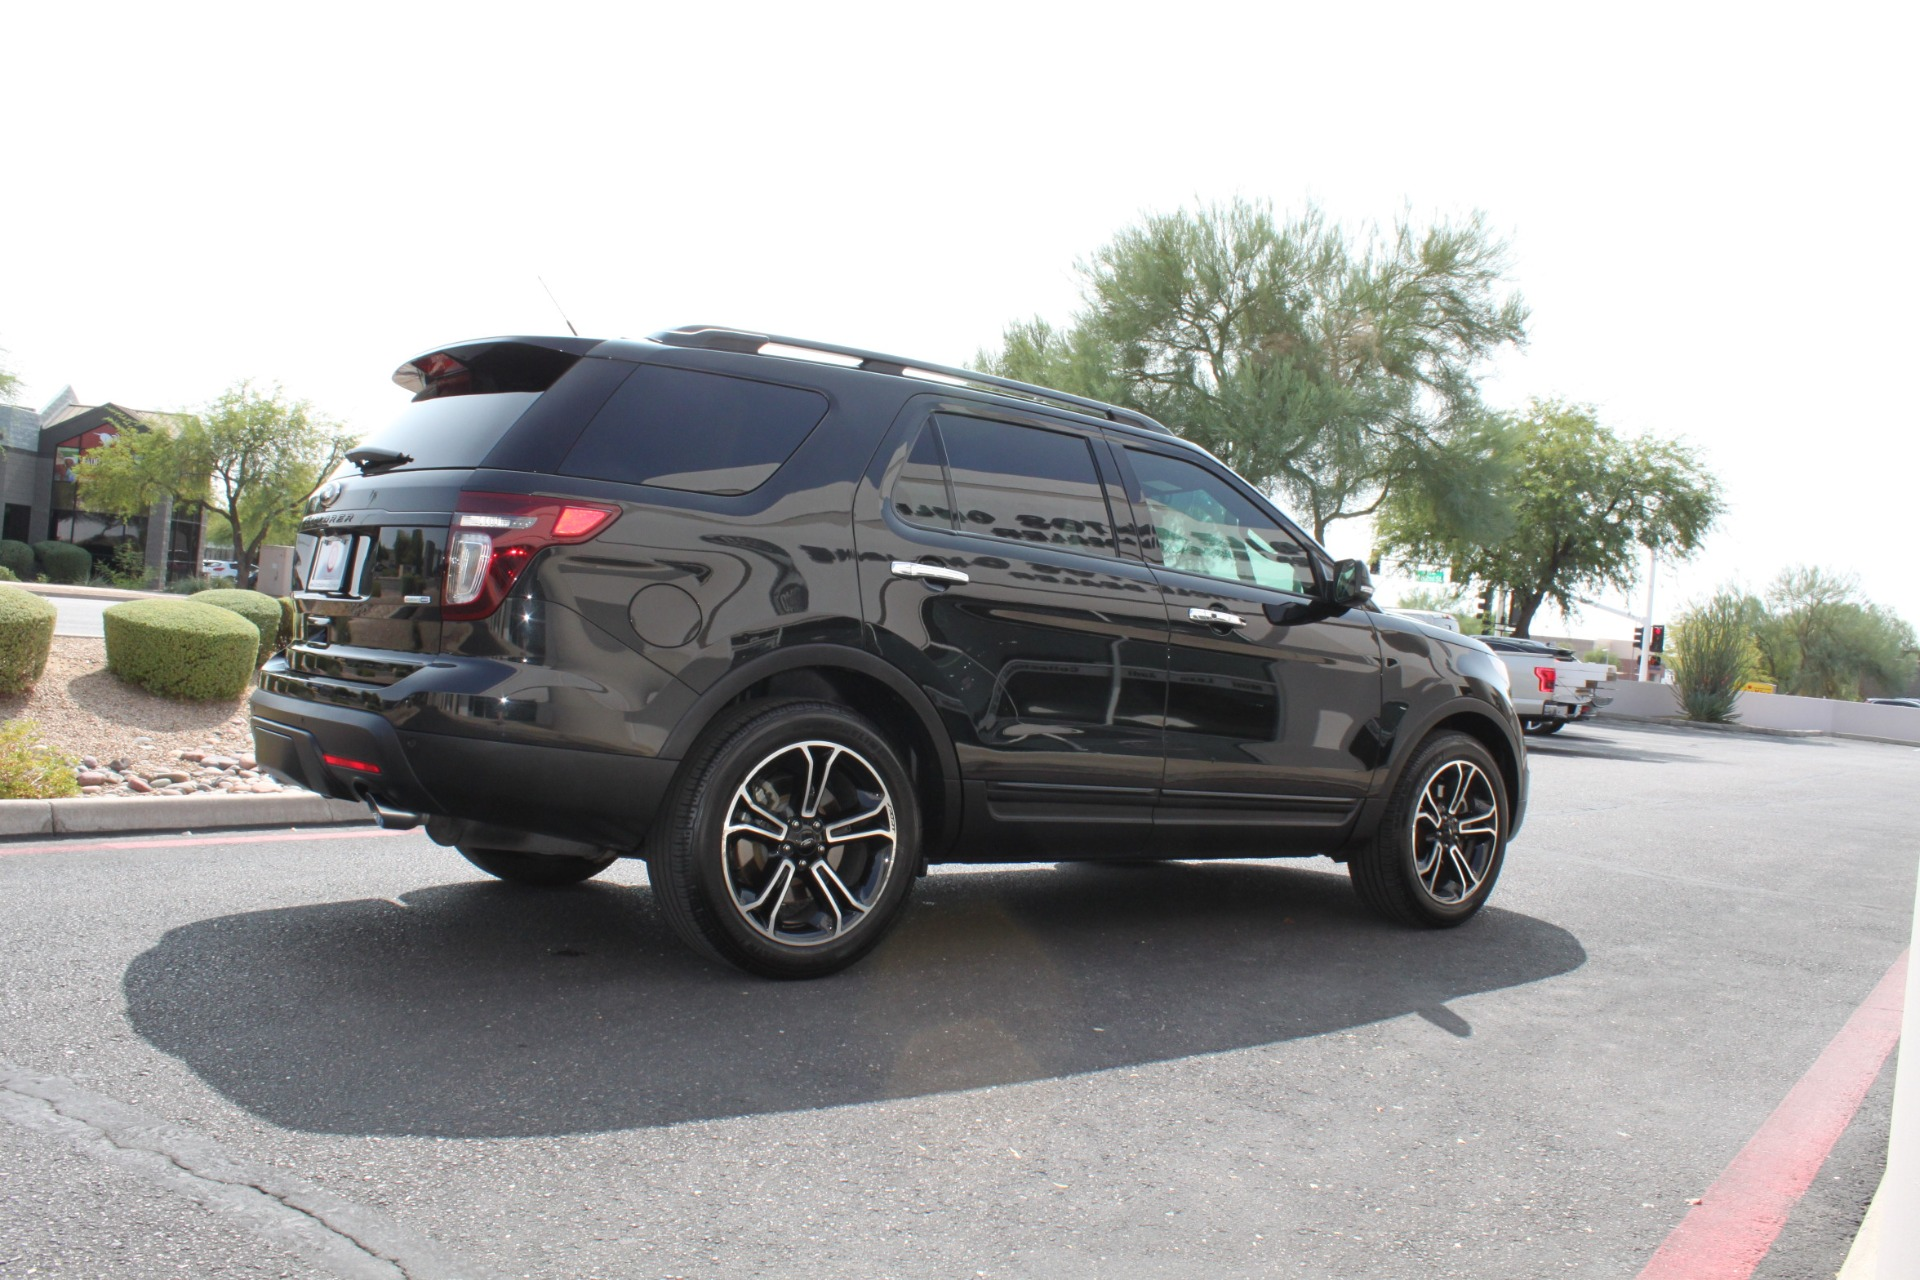 Used-2014-Ford-Explorer-Sport-4WD-Land-Cruiser